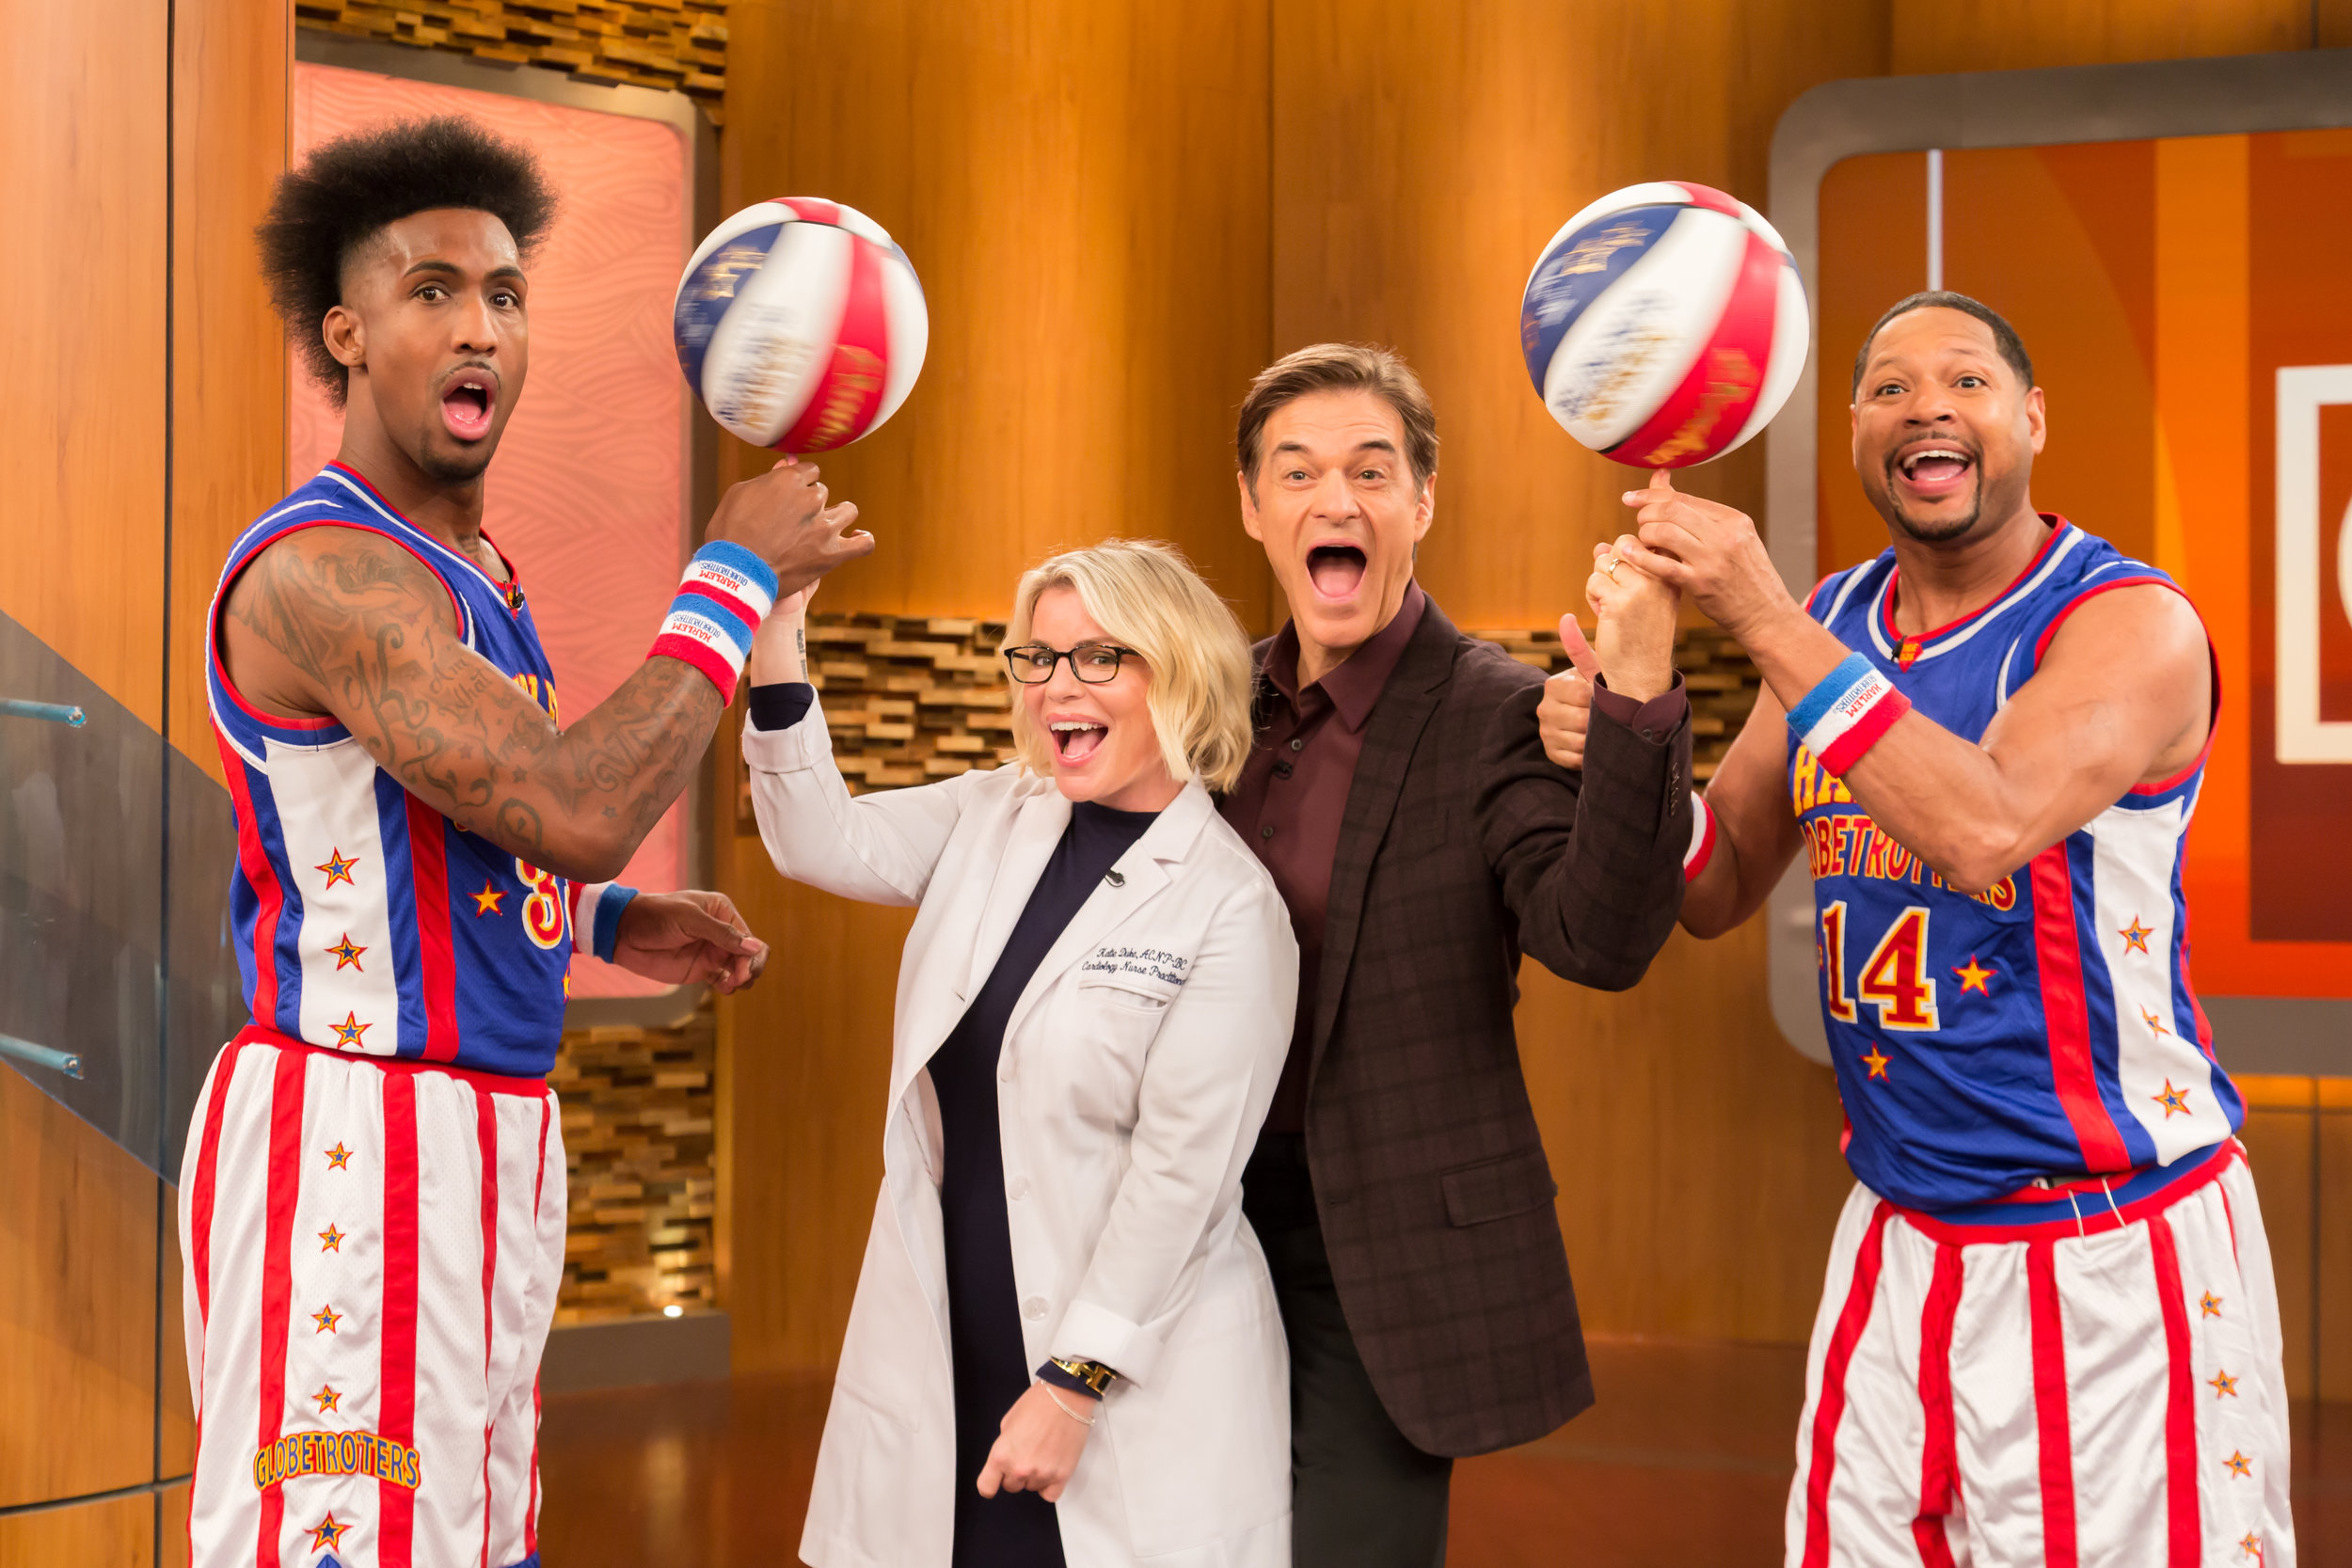 Harlem Globetrotters on The Doctor OZ Show